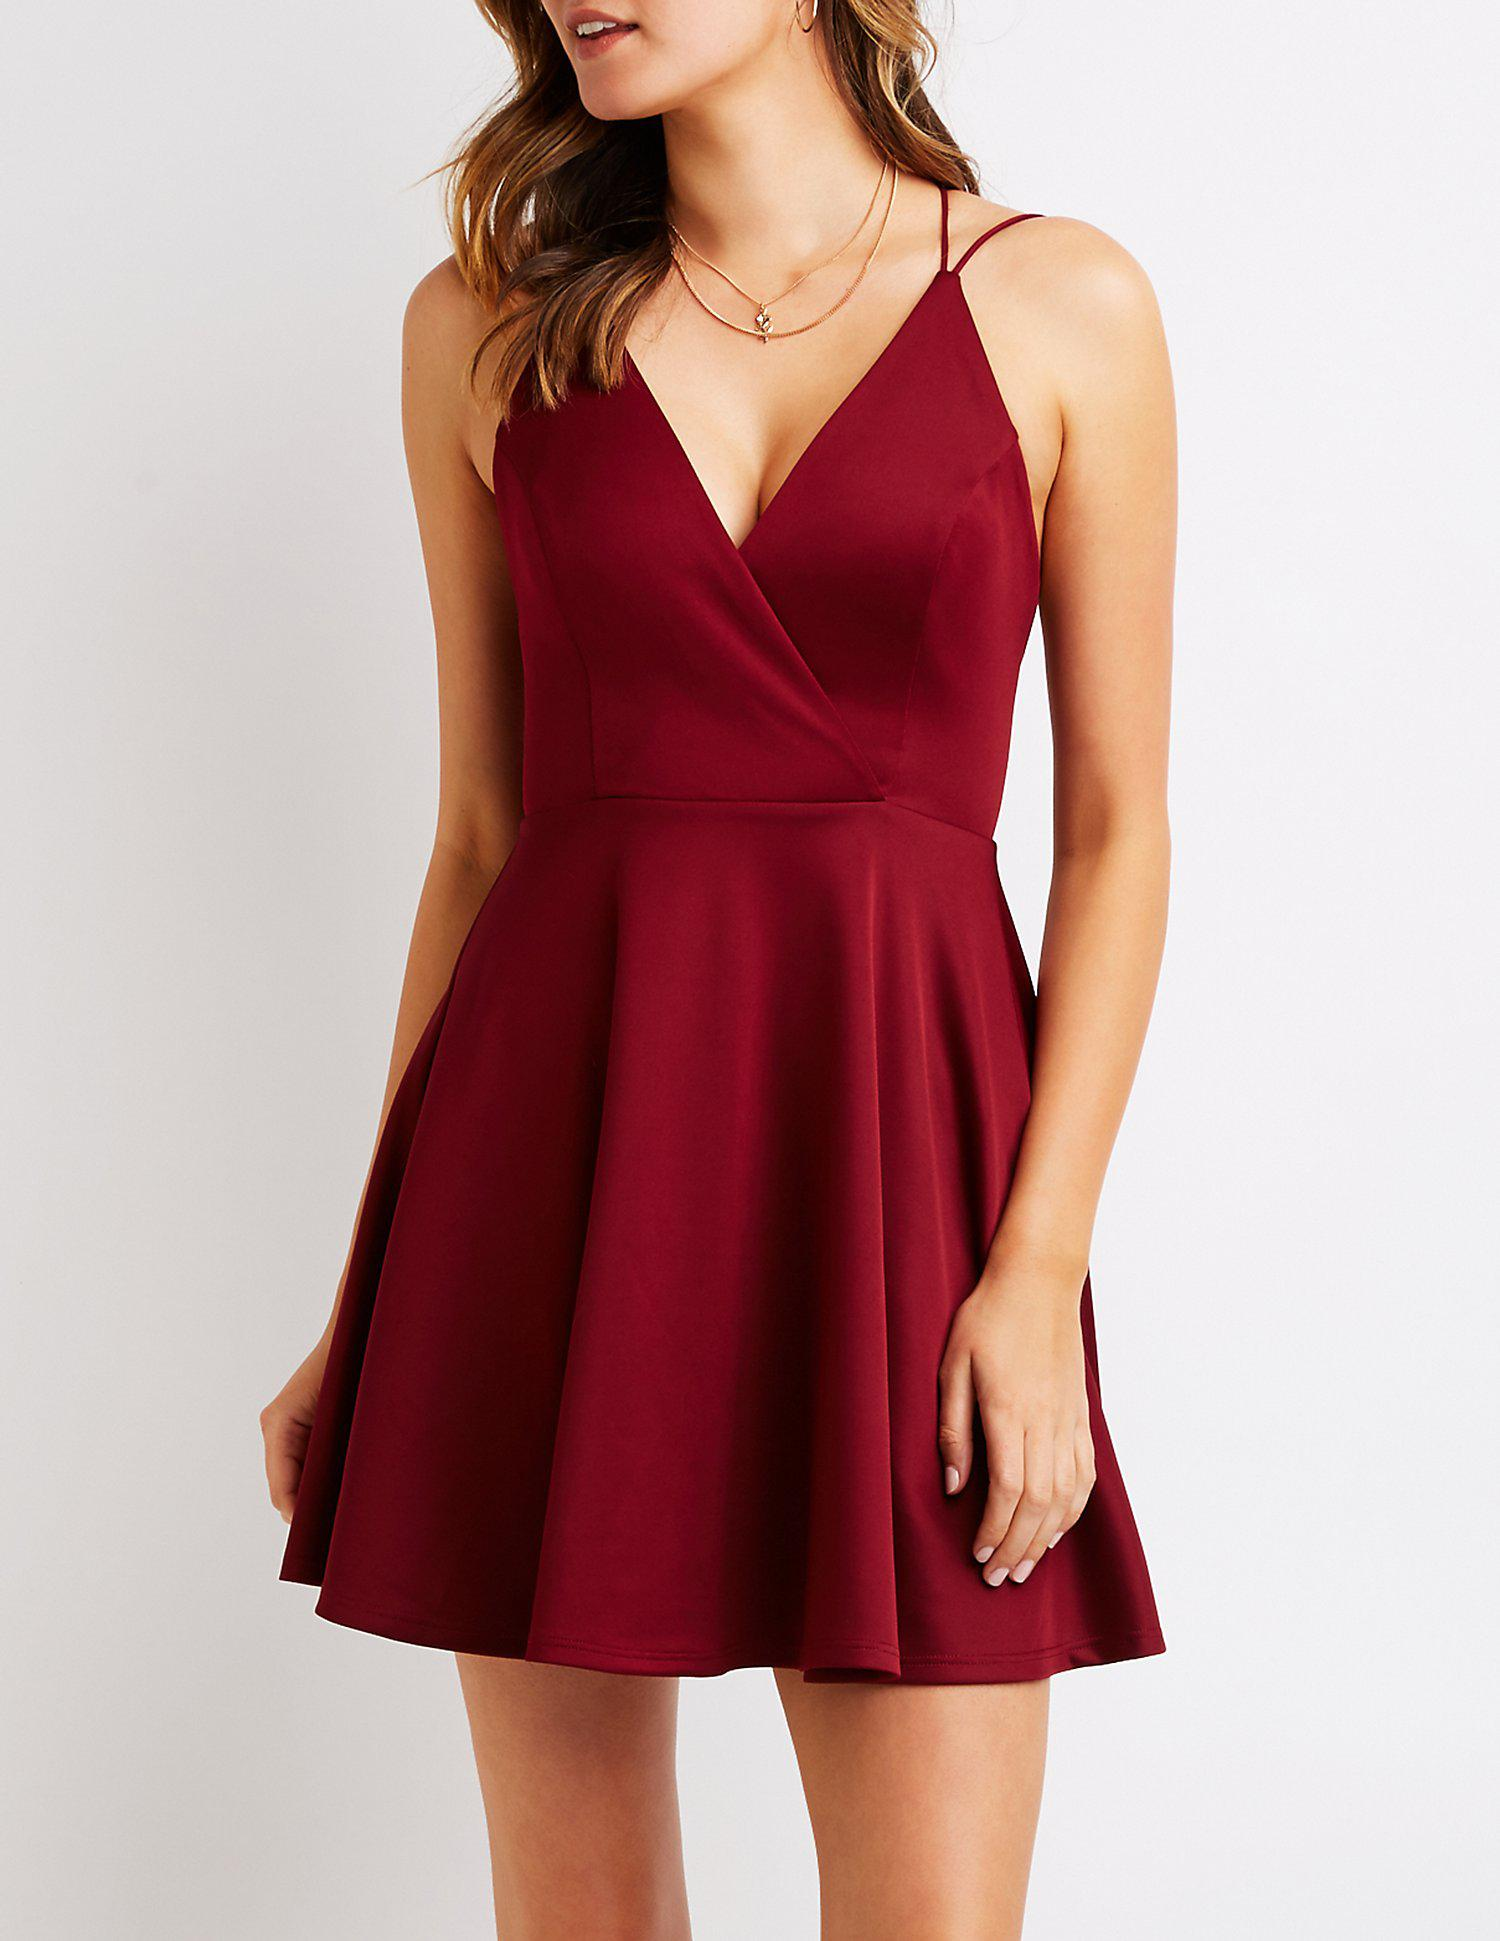 b359f93738 Lyst - Charlotte Russe Strappy Open Back Skater Dress in Red